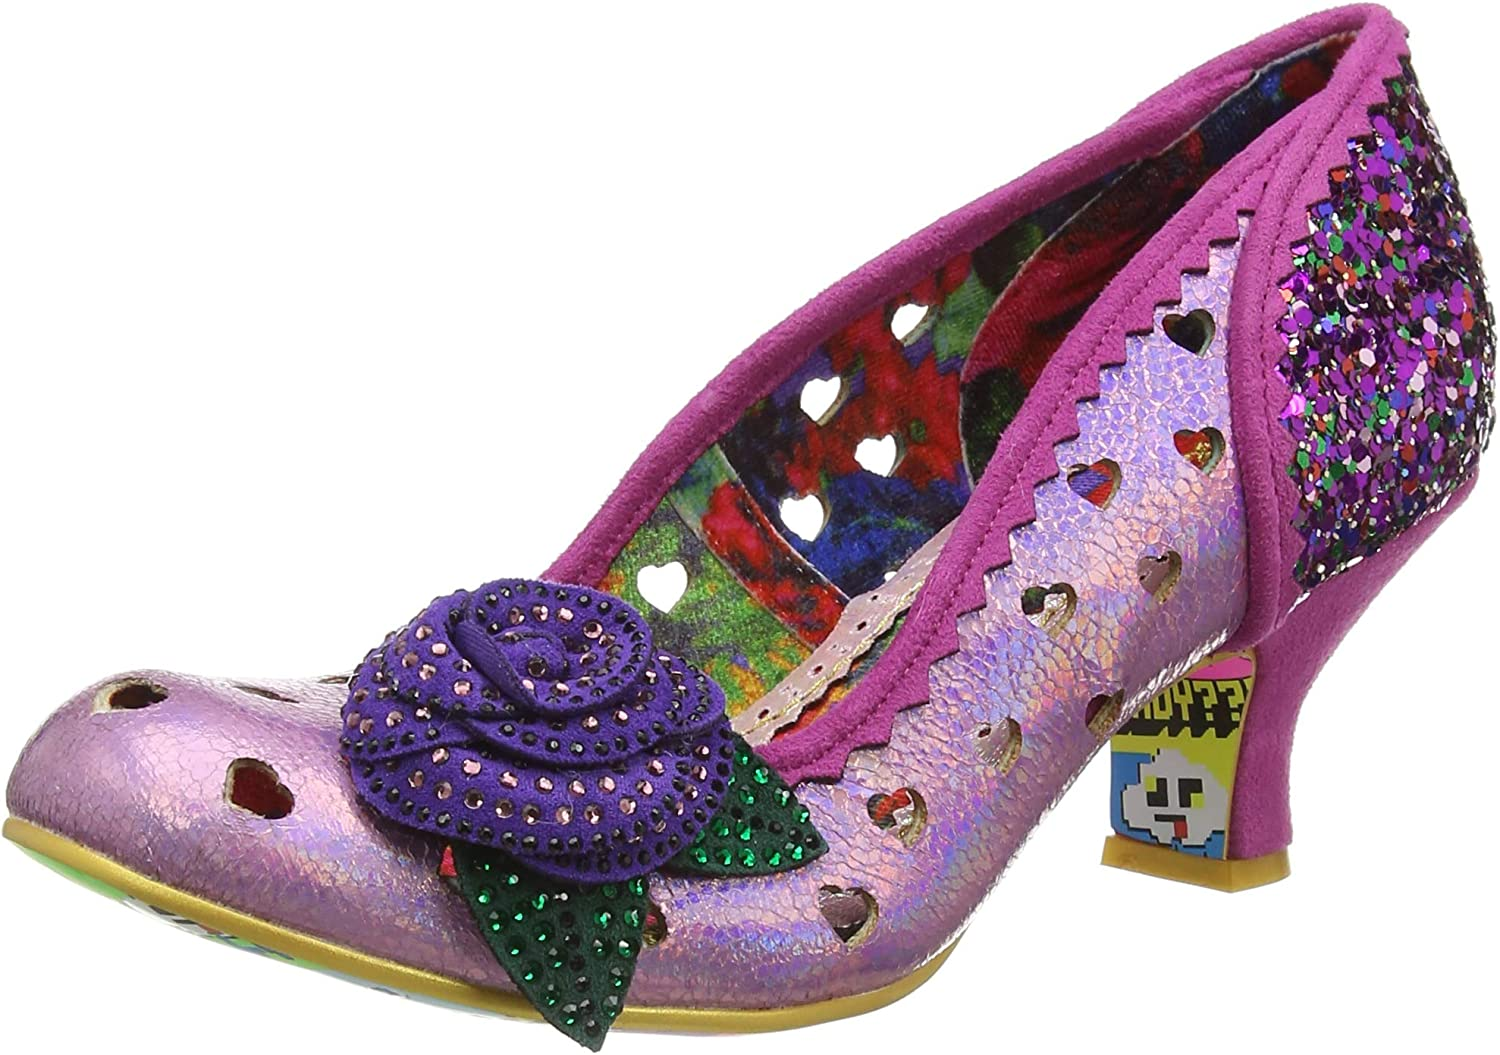 Escarpins Bout ferm/é Femme Irregular Choice Lady Ban Joe